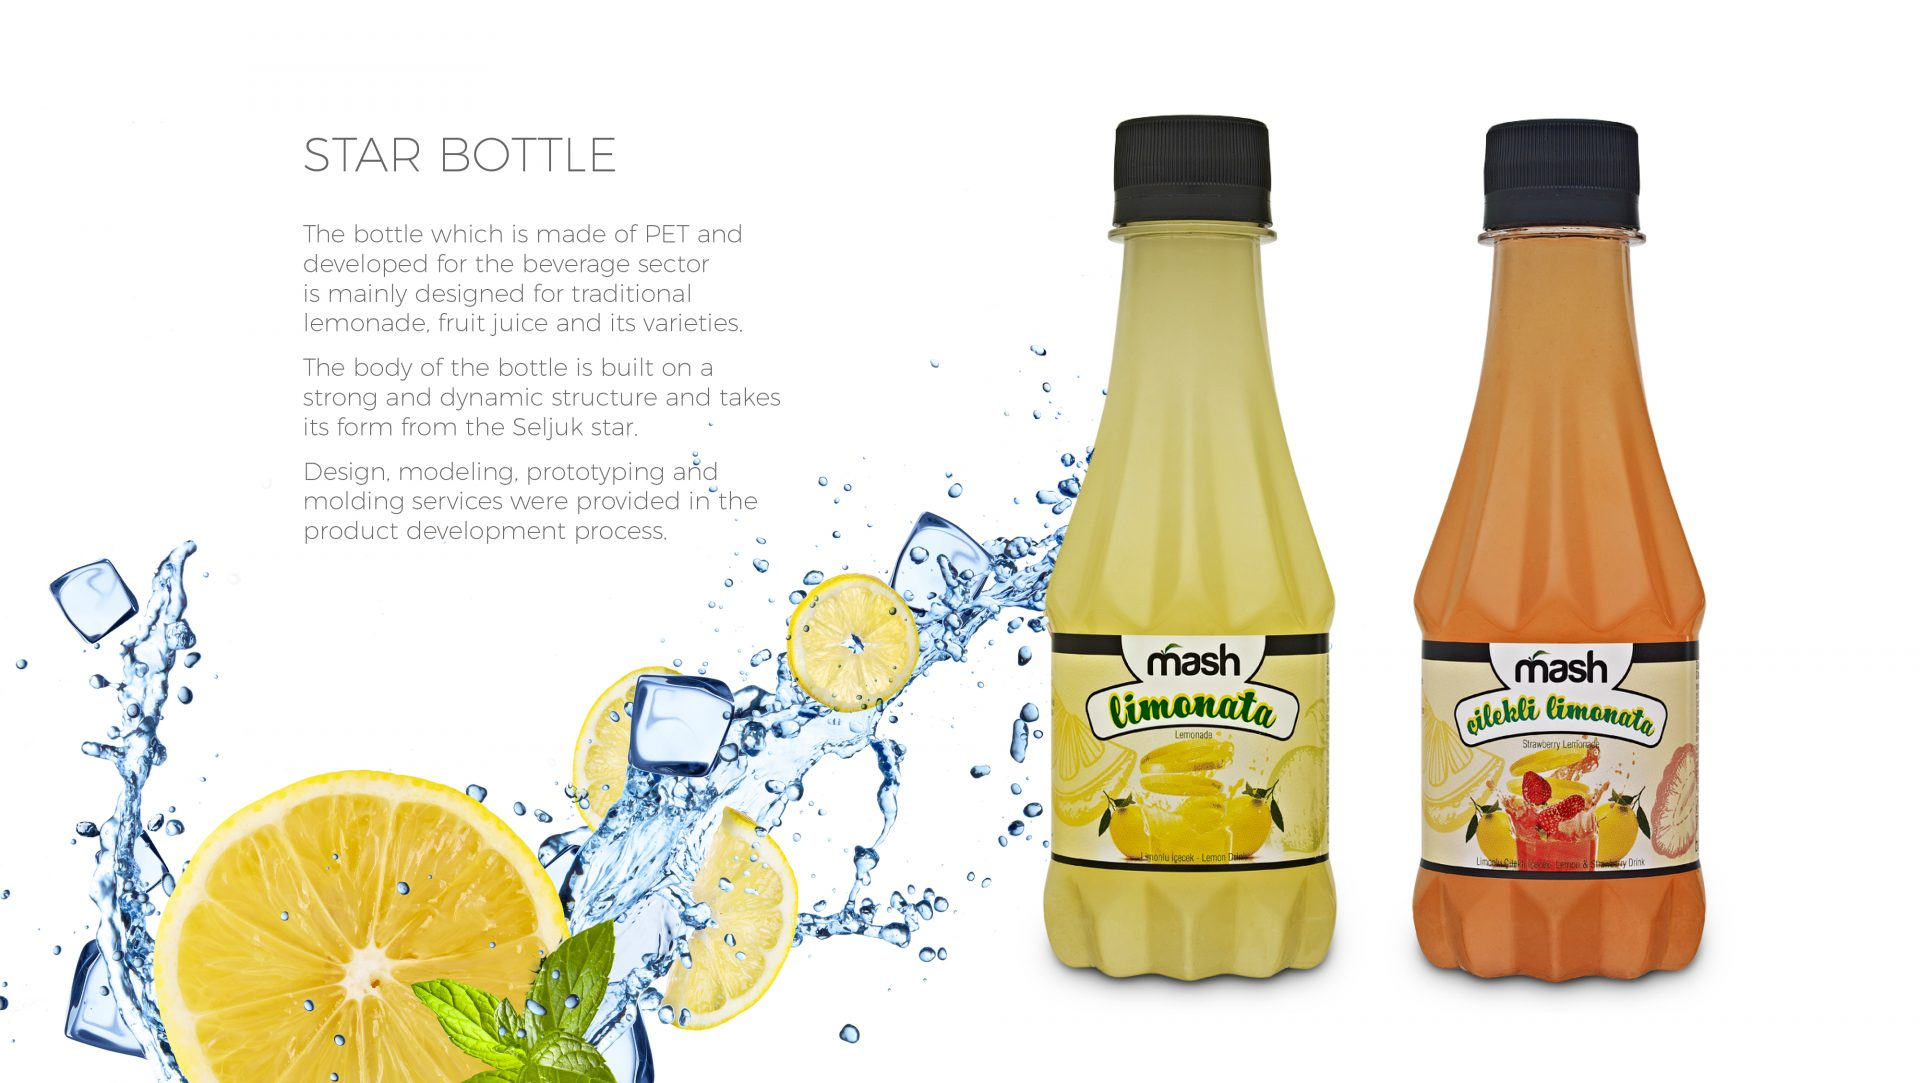 Beverage Packaging Design - Tamer Celebioglu